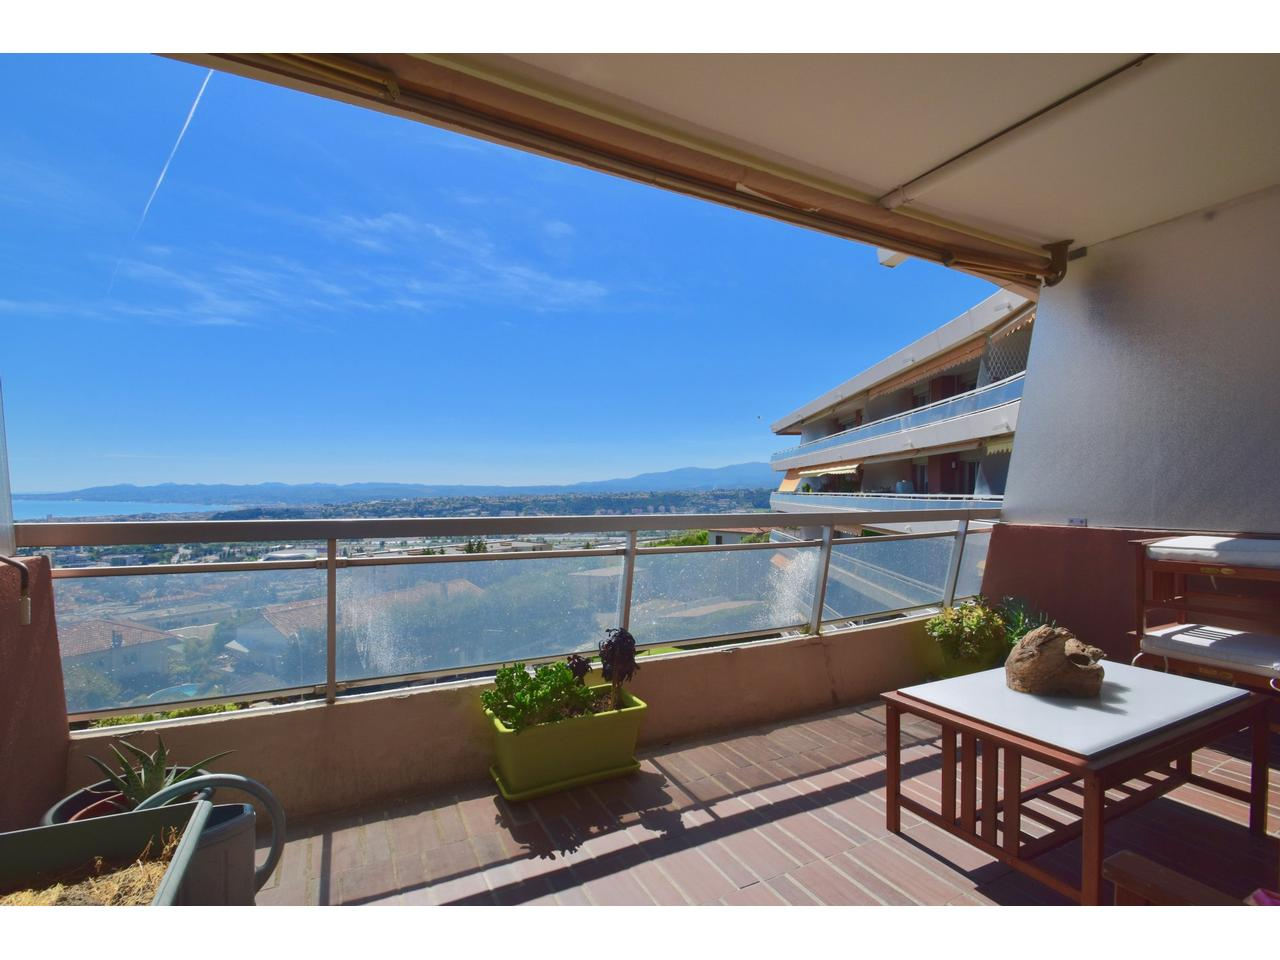 Immobilier nice vue mer appartement nice belles terres for Agence immobiliere terrasse en vue